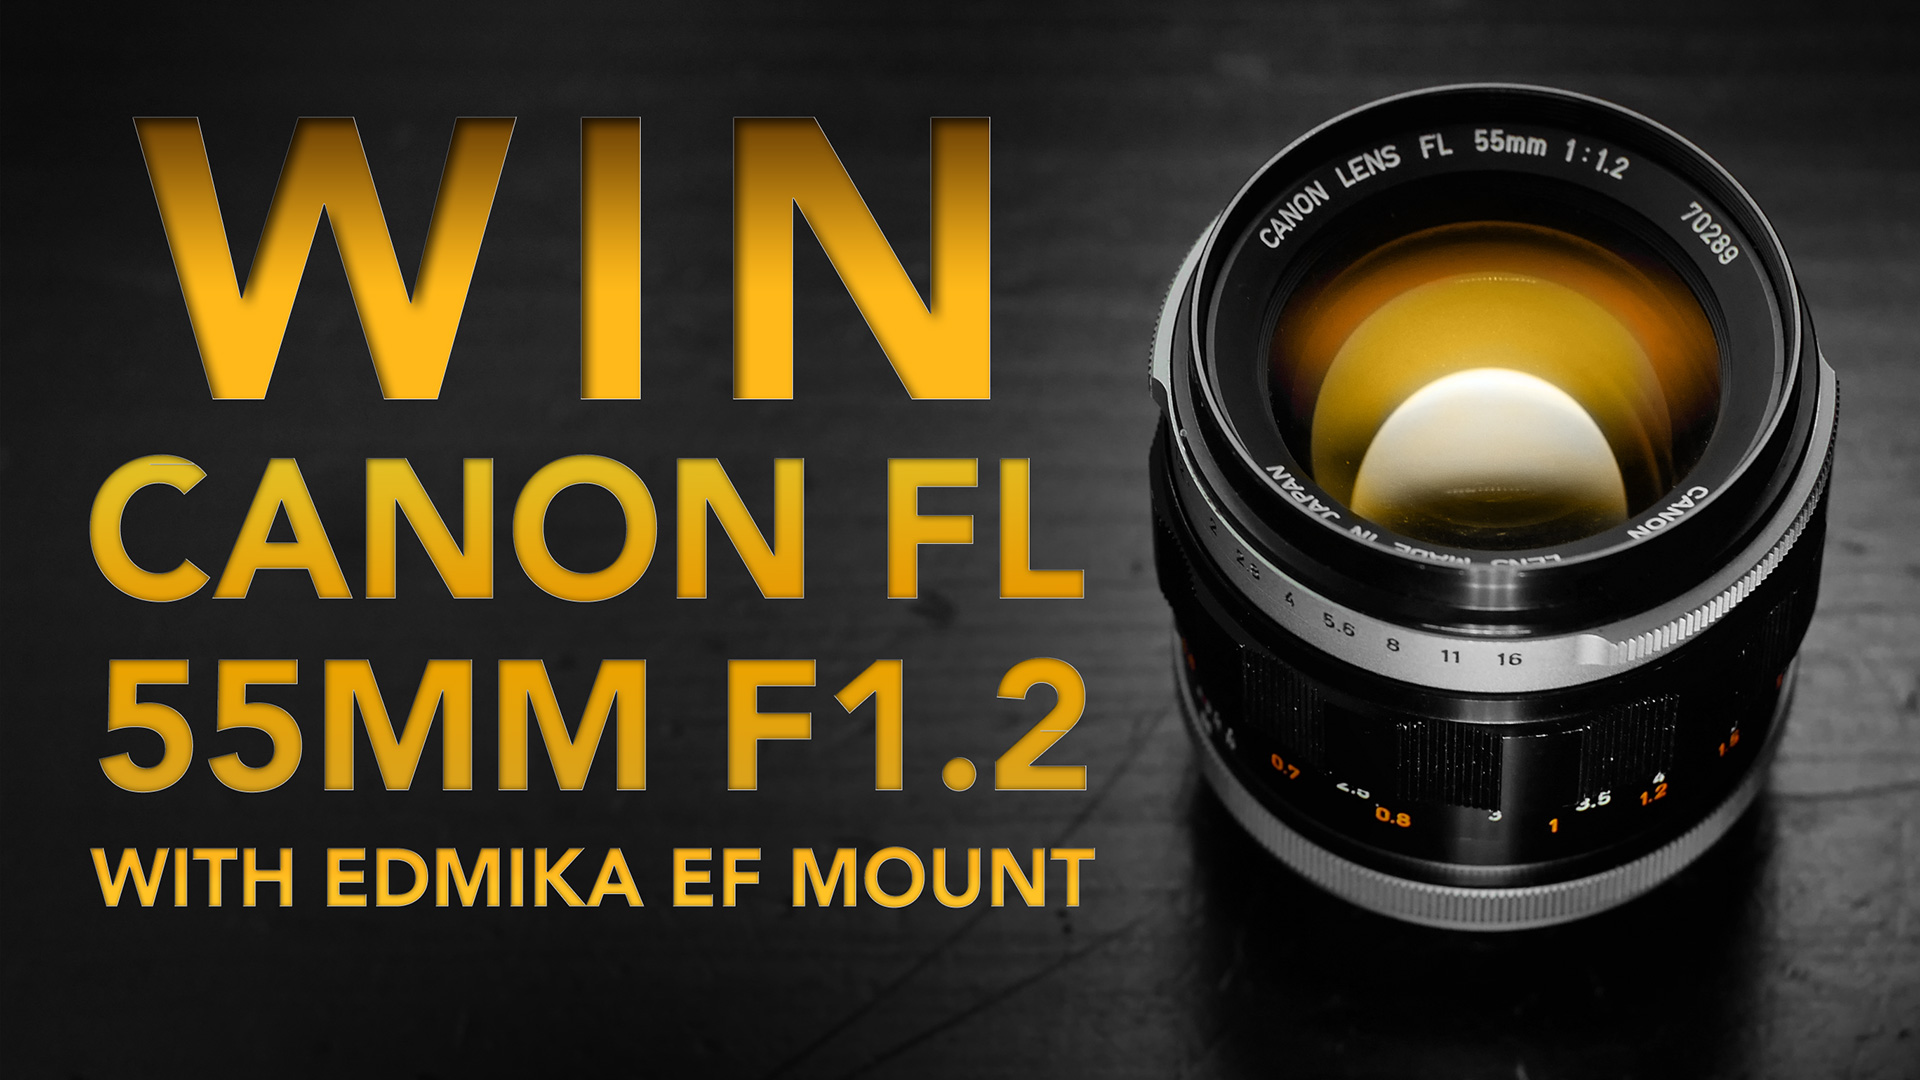 WIN CANON FL 55mm F1.2 LENS with EDMIKA EF MOUNT